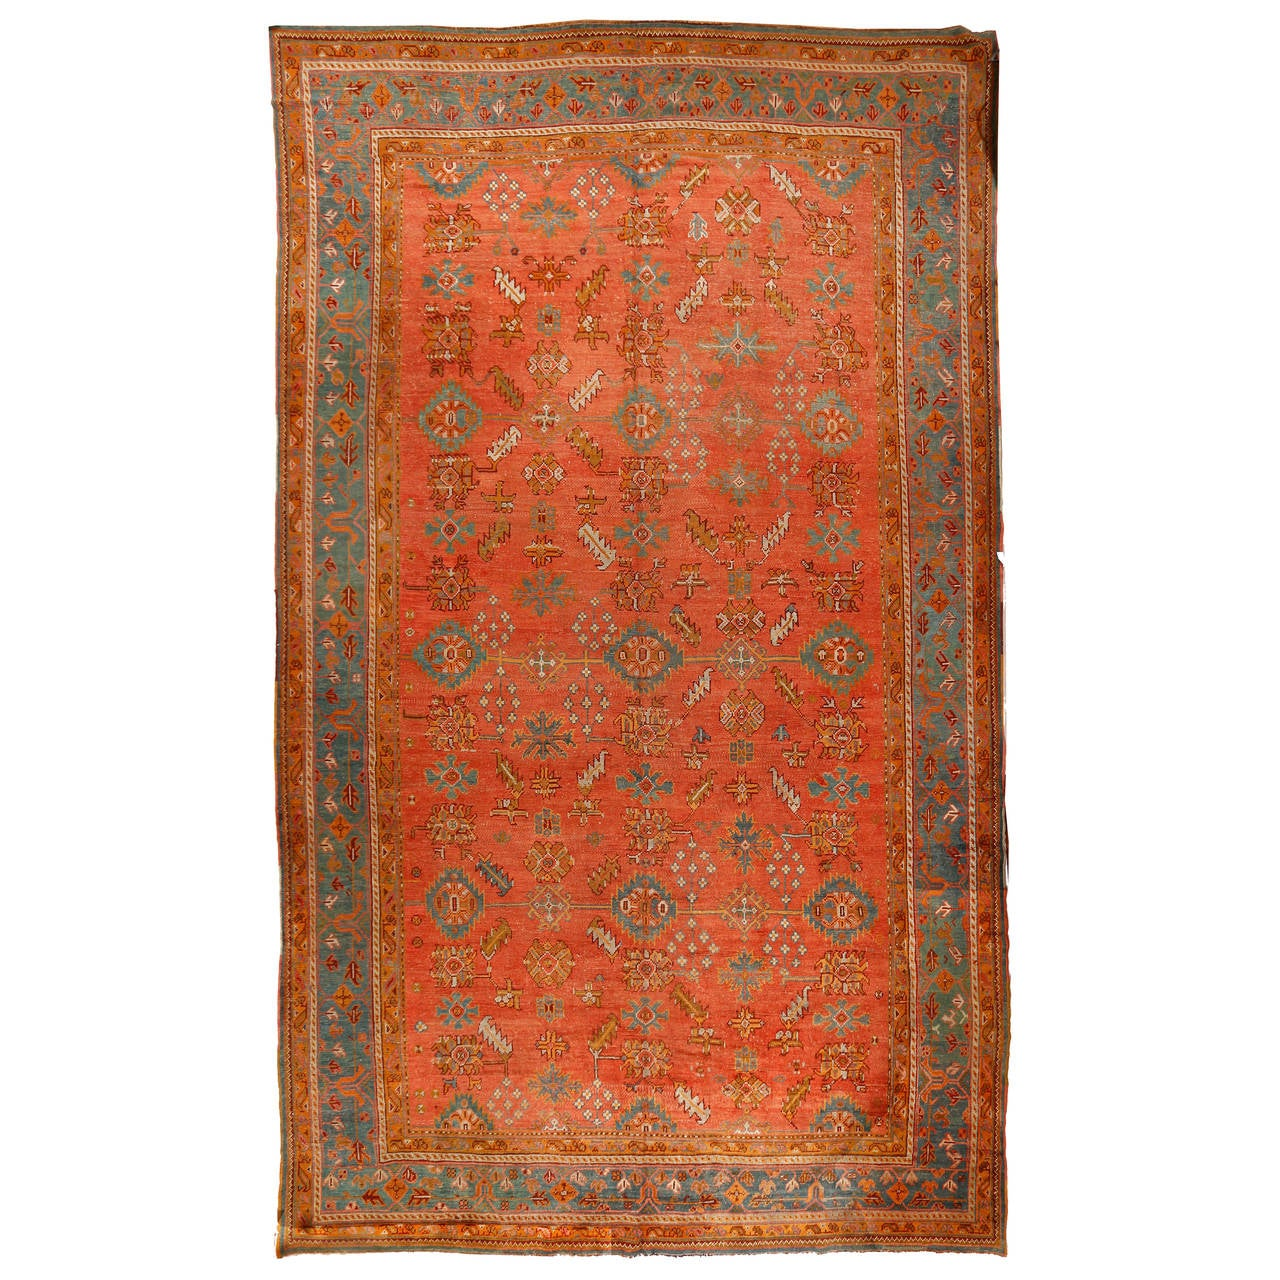 Oushak Rugs For Sale: Antique Oushak Rug, Circa 1890 For Sale At 1stdibs